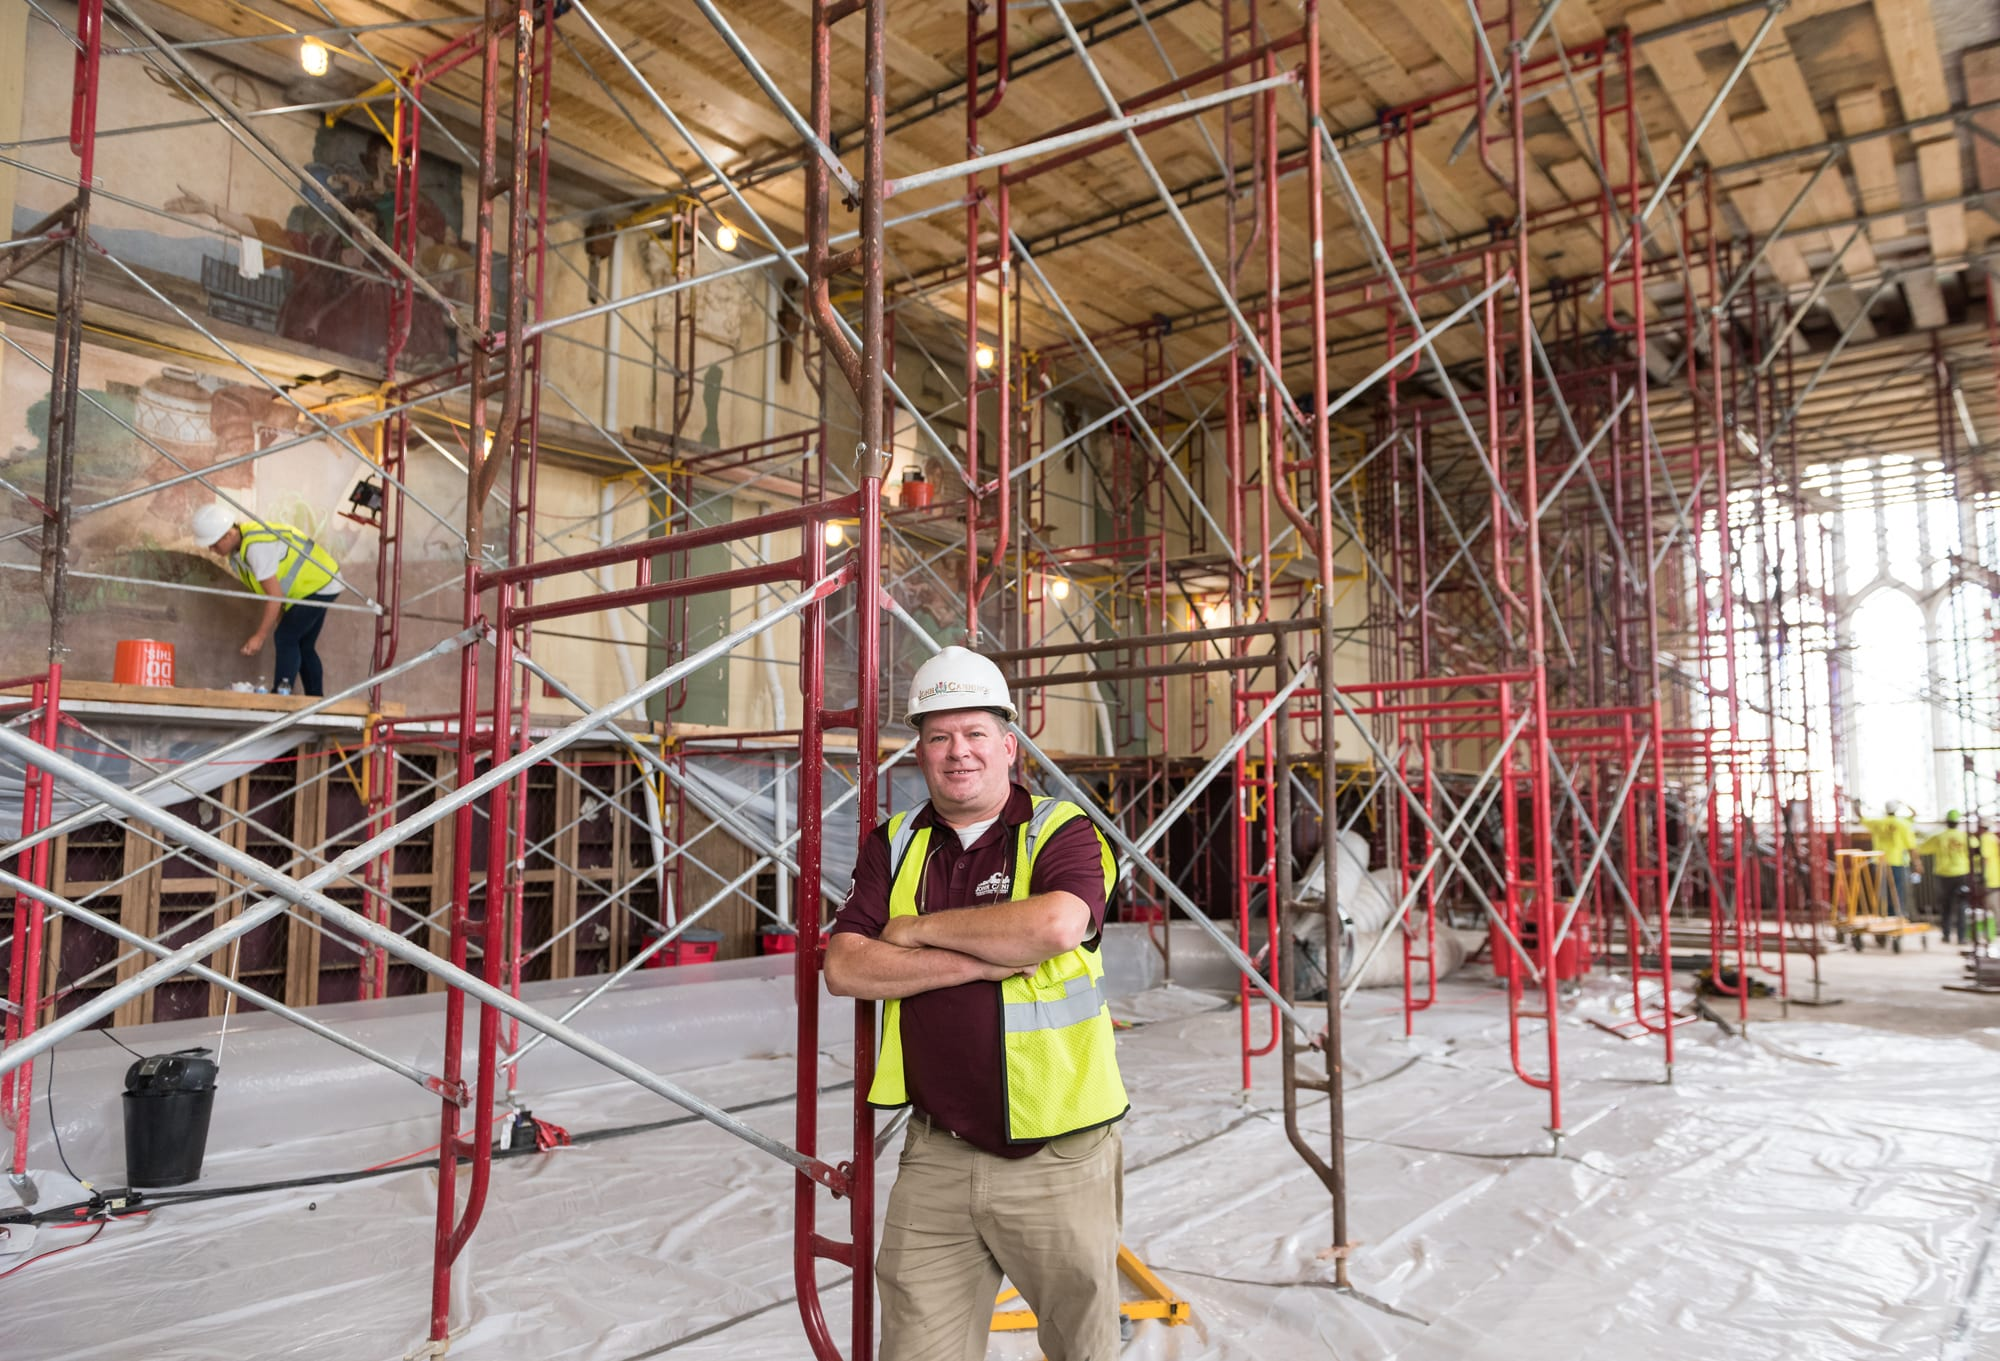 A man in a hardhat and yellow construction vest leans against red metal scaffolding in the Great Room.